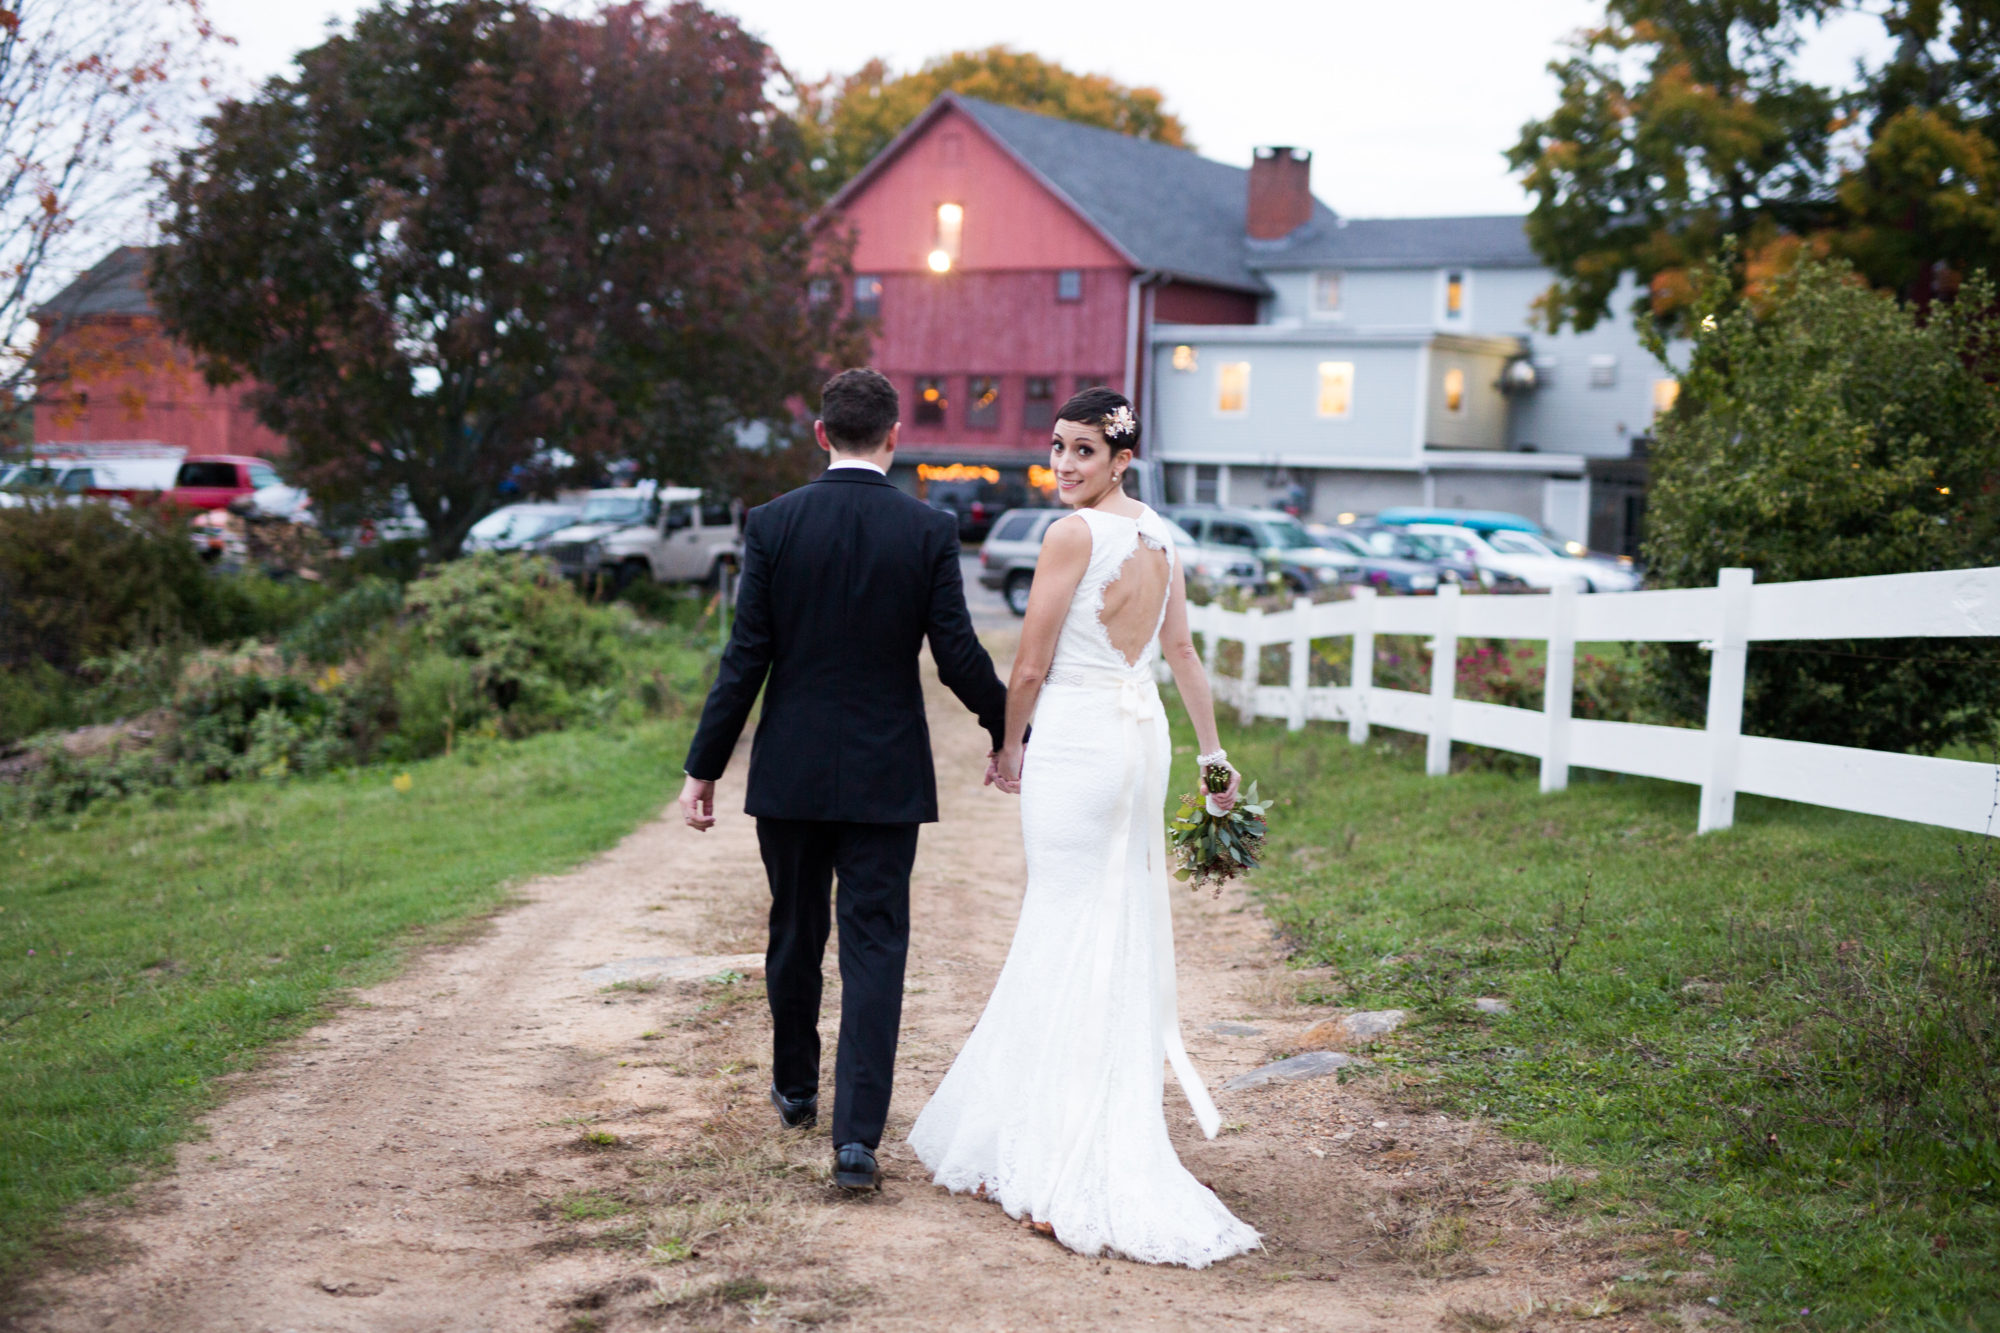 Couple Barn Wedding Massachusetts Zsuzsi Pal Photography Destination